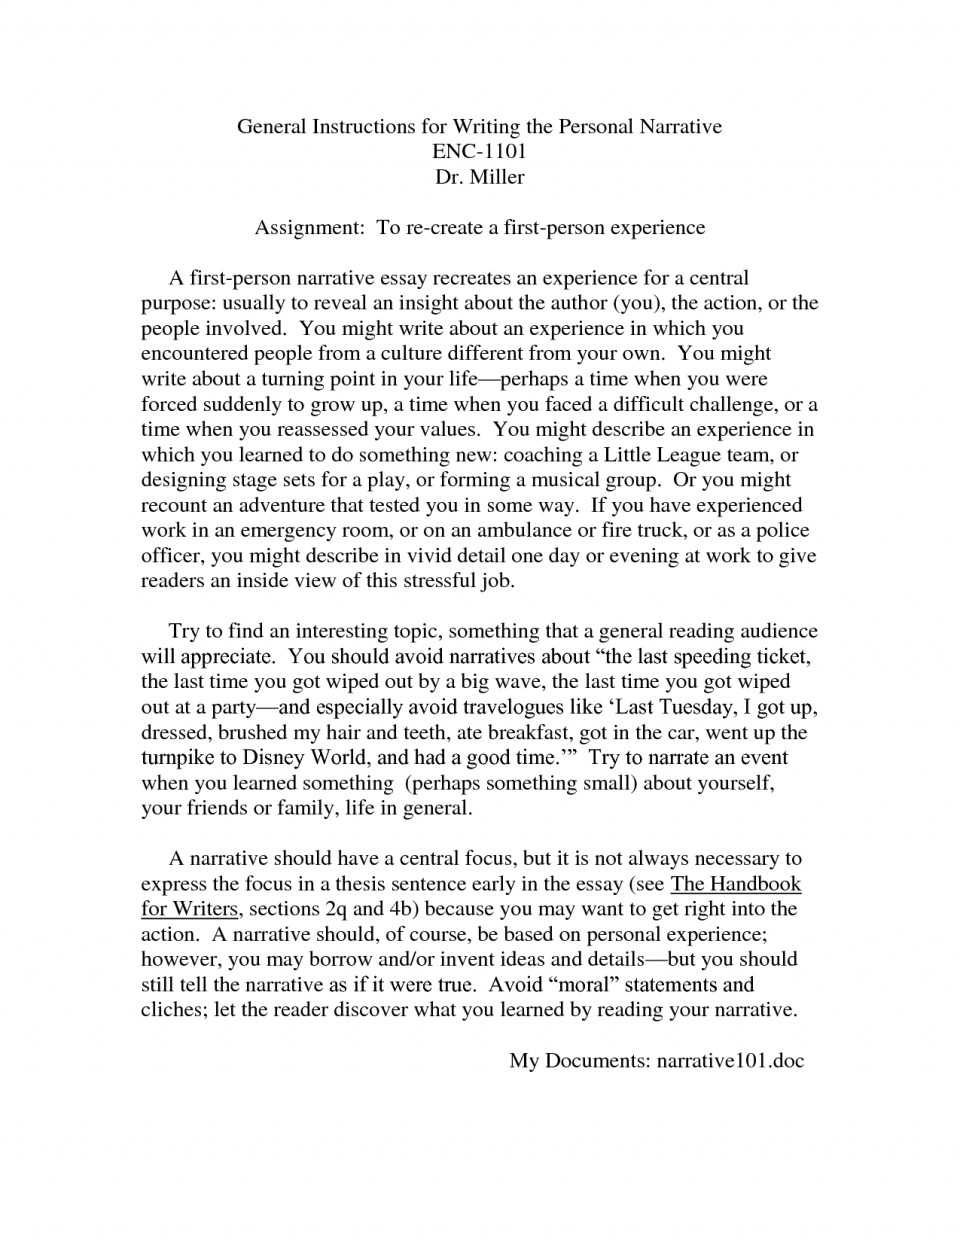 009 Zgup350miv Essay Example Of Imposing A Narrative Introduction Format About Love 960